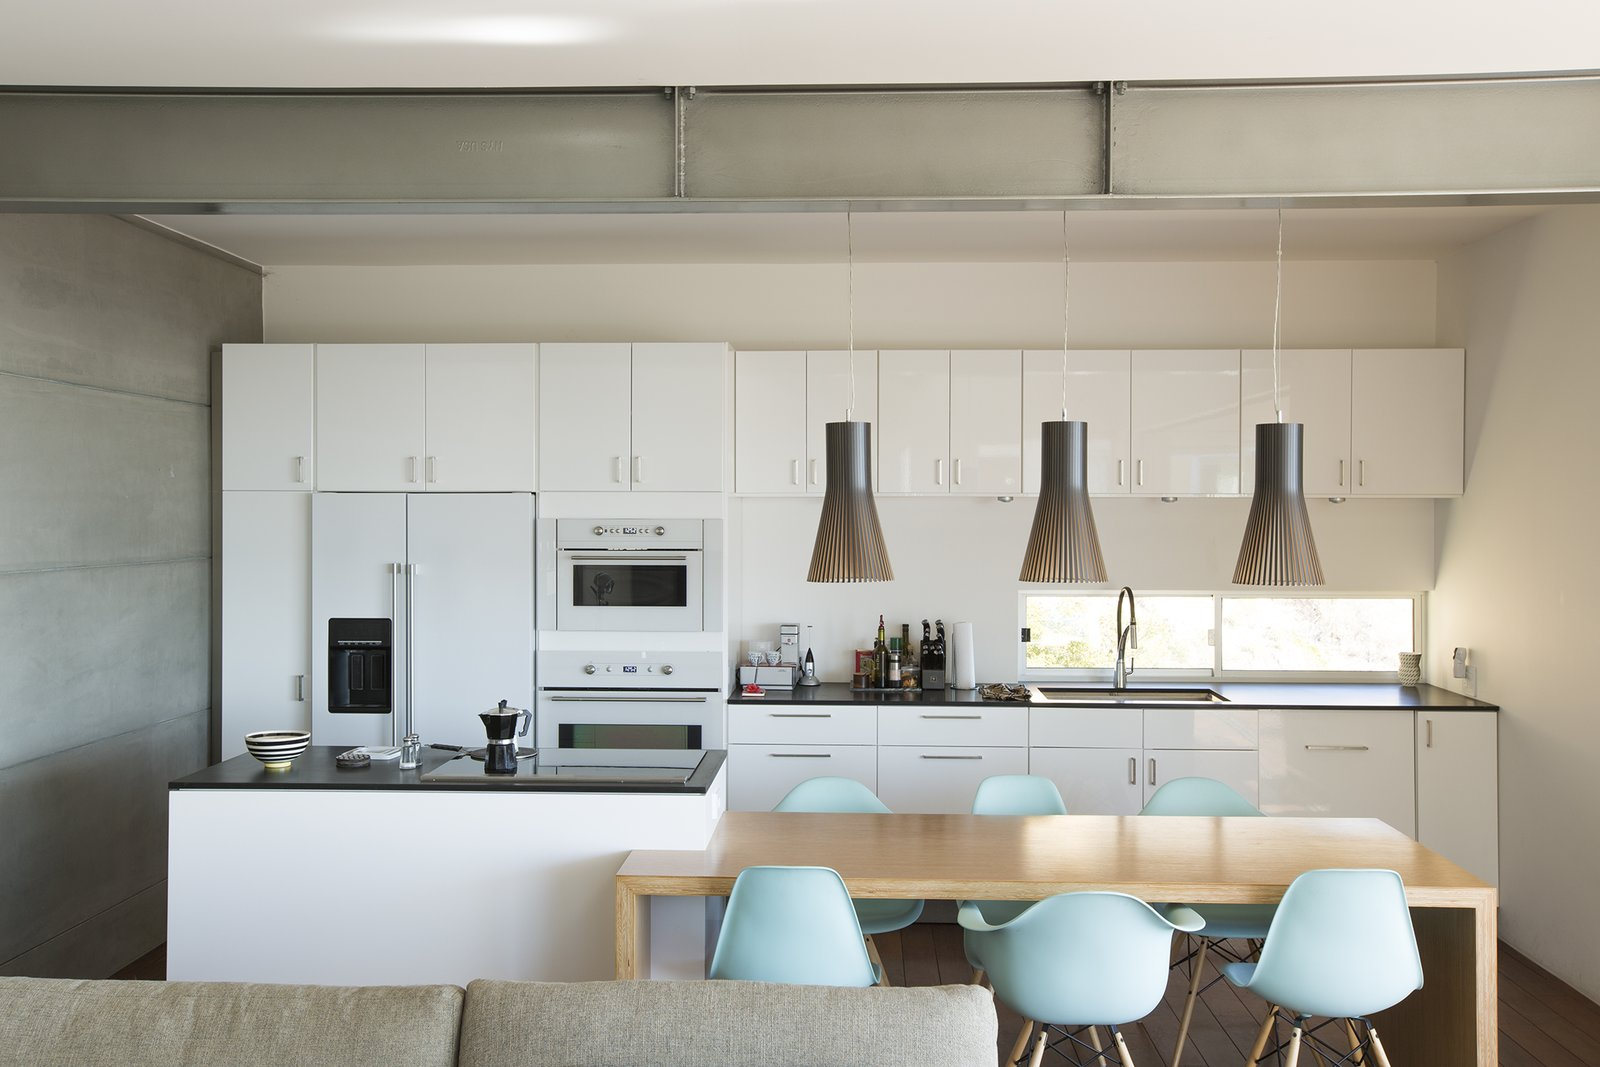 Pendants from Finnish Design Shop light a table by carpenter Leo LaPlante. The Eames chairs are from Design Within Reach.  Kitchen by Jamel from Facing the Elements